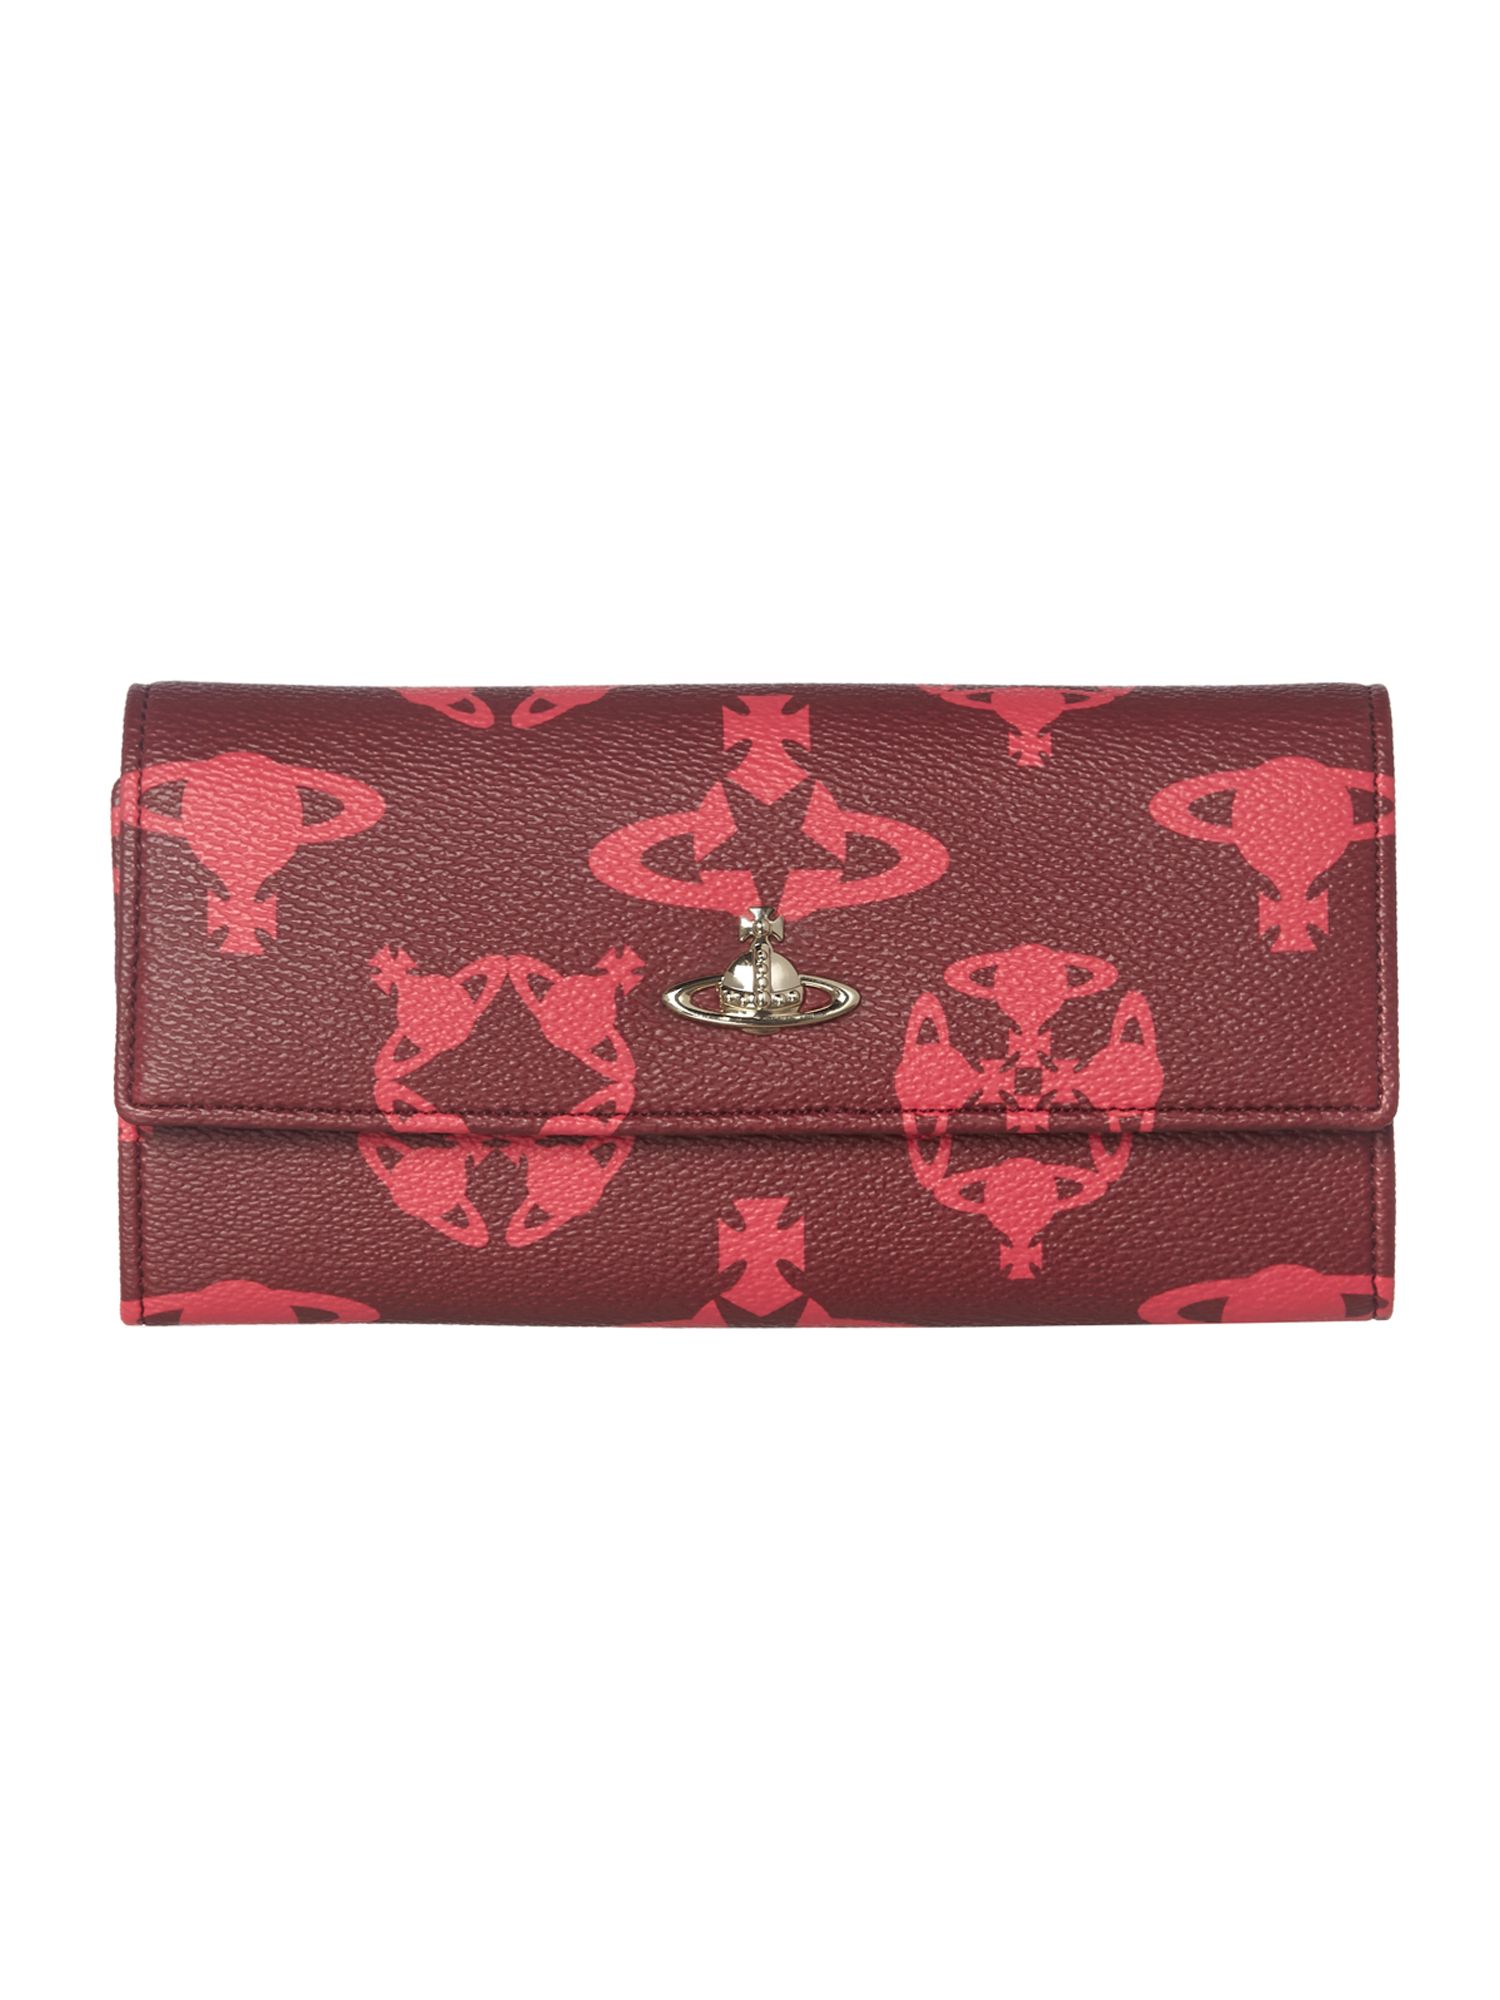 Logomania multi coloured large flap over purse